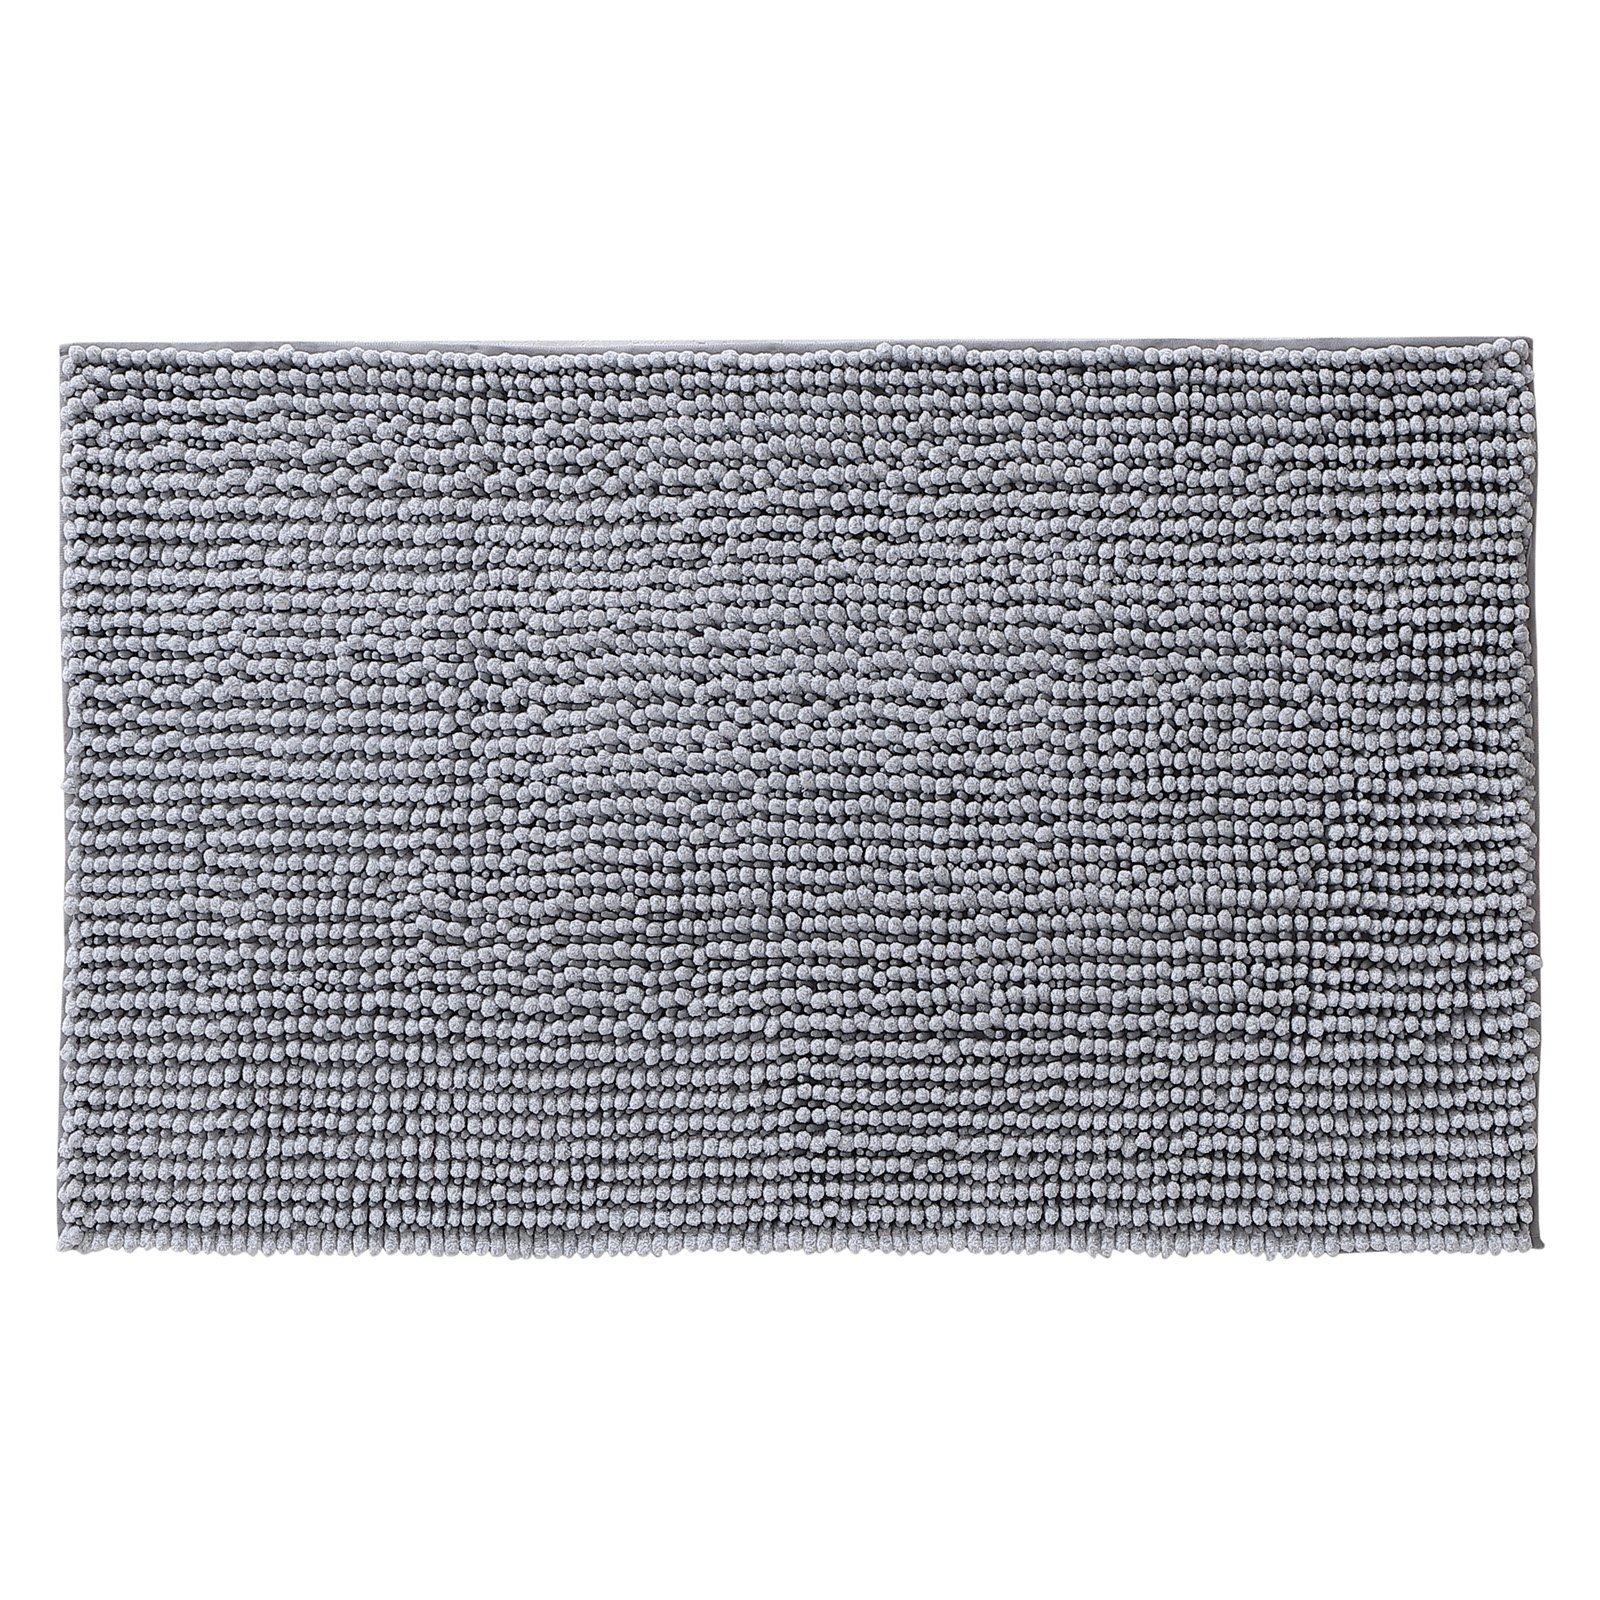 VCNY Home Solid Heathered Noodle Bath Rug, Multiple Colors and Sizes Available by VCNY Home